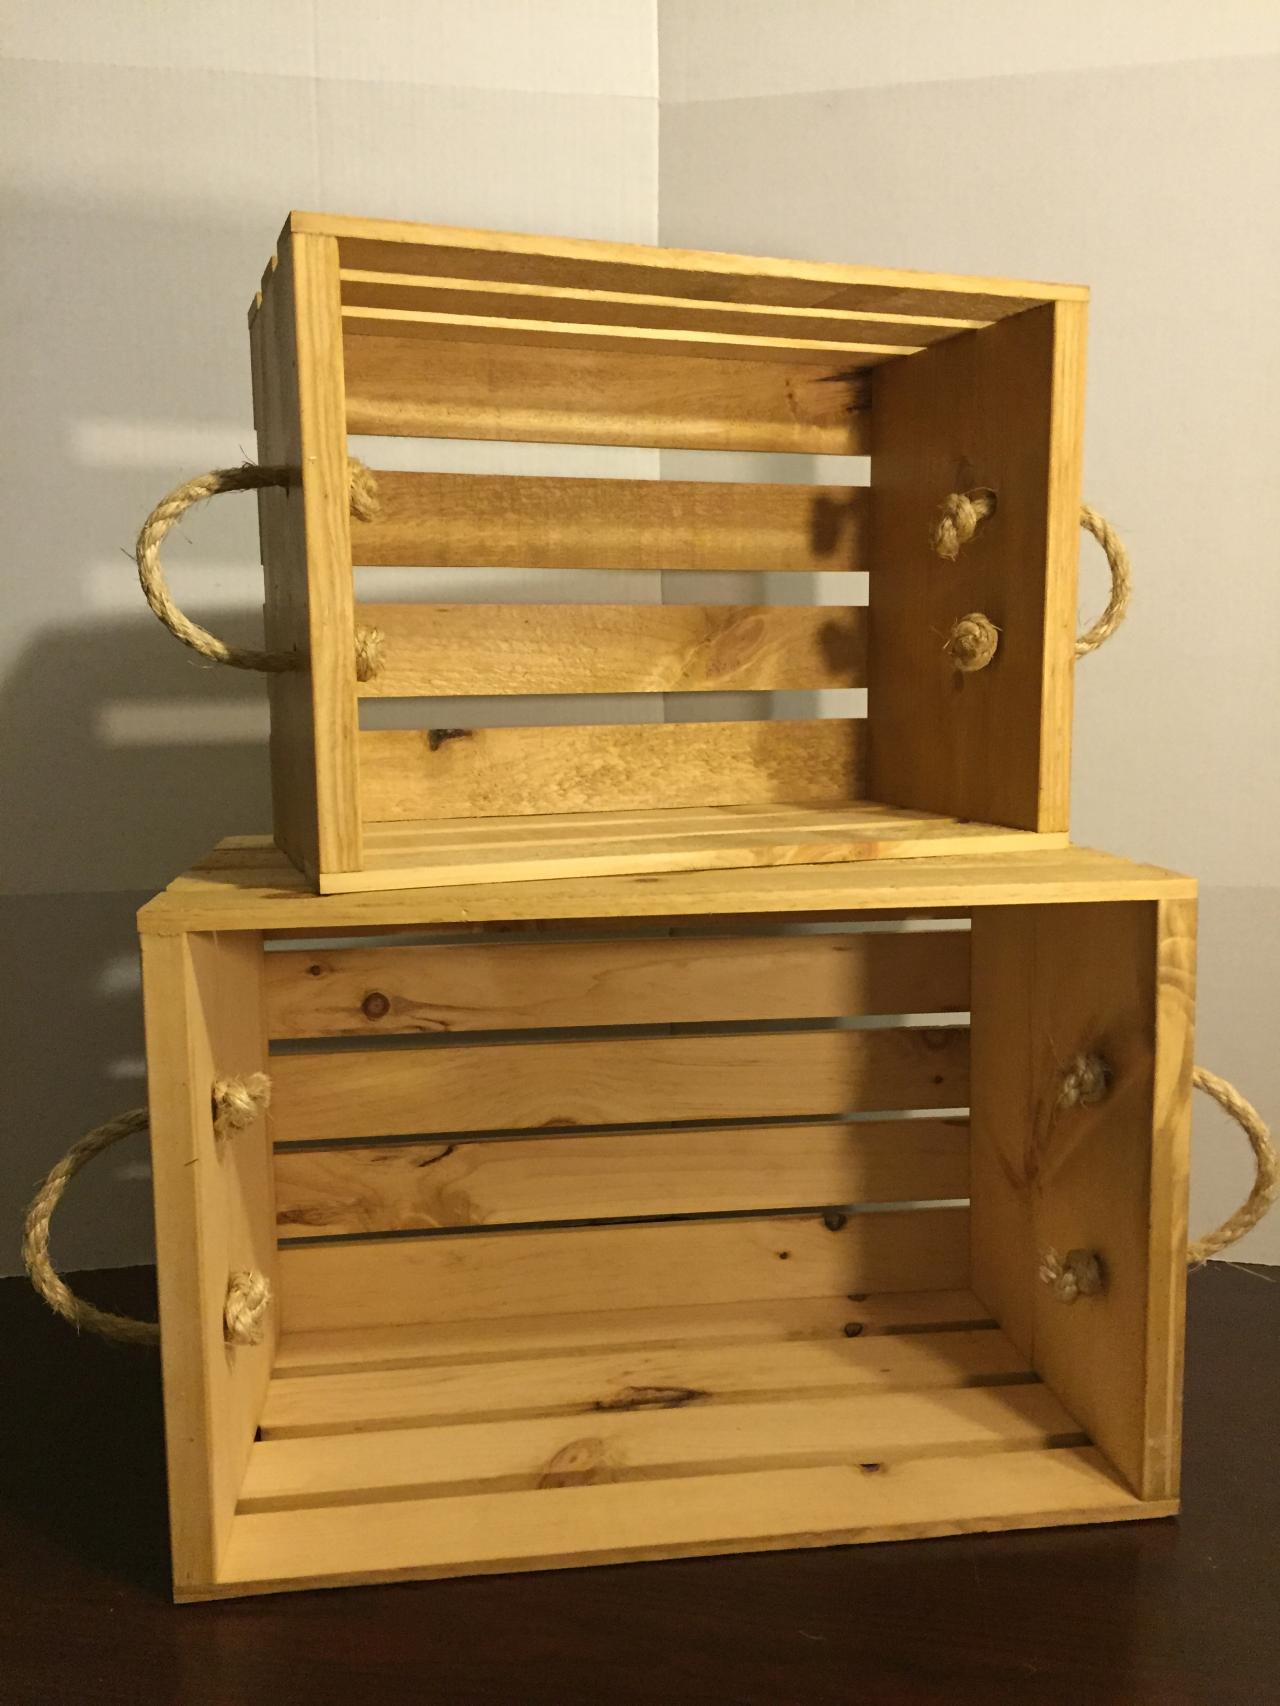 Cheap Wooden Crates Wooden Crates Wholesale Good Superb Wooden Crates